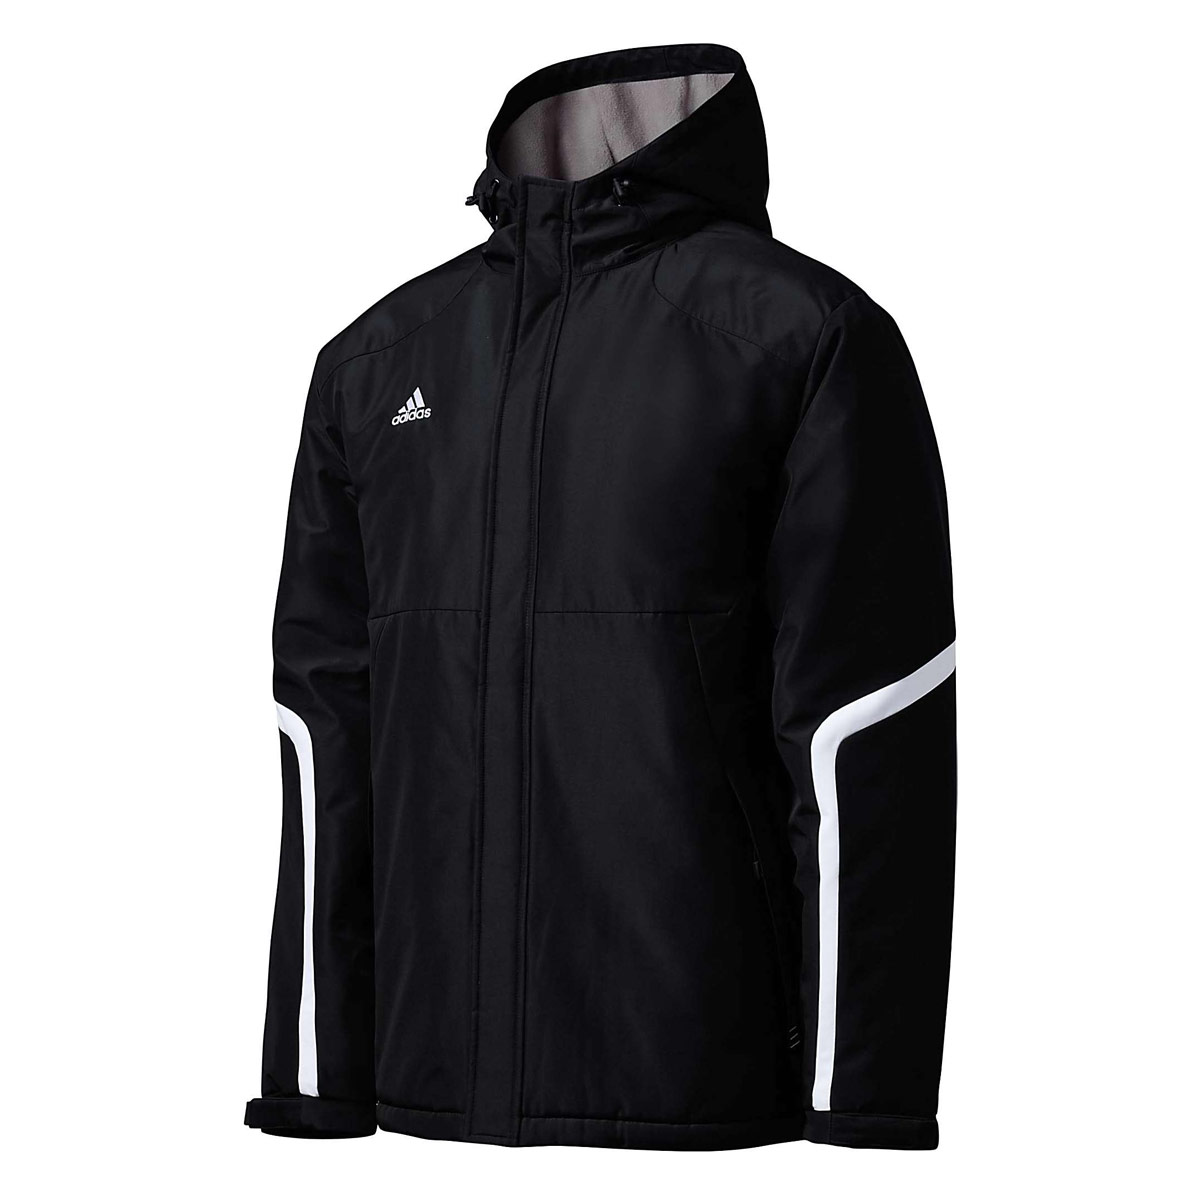 Adidas Anti-Freeze Stadium Jacket